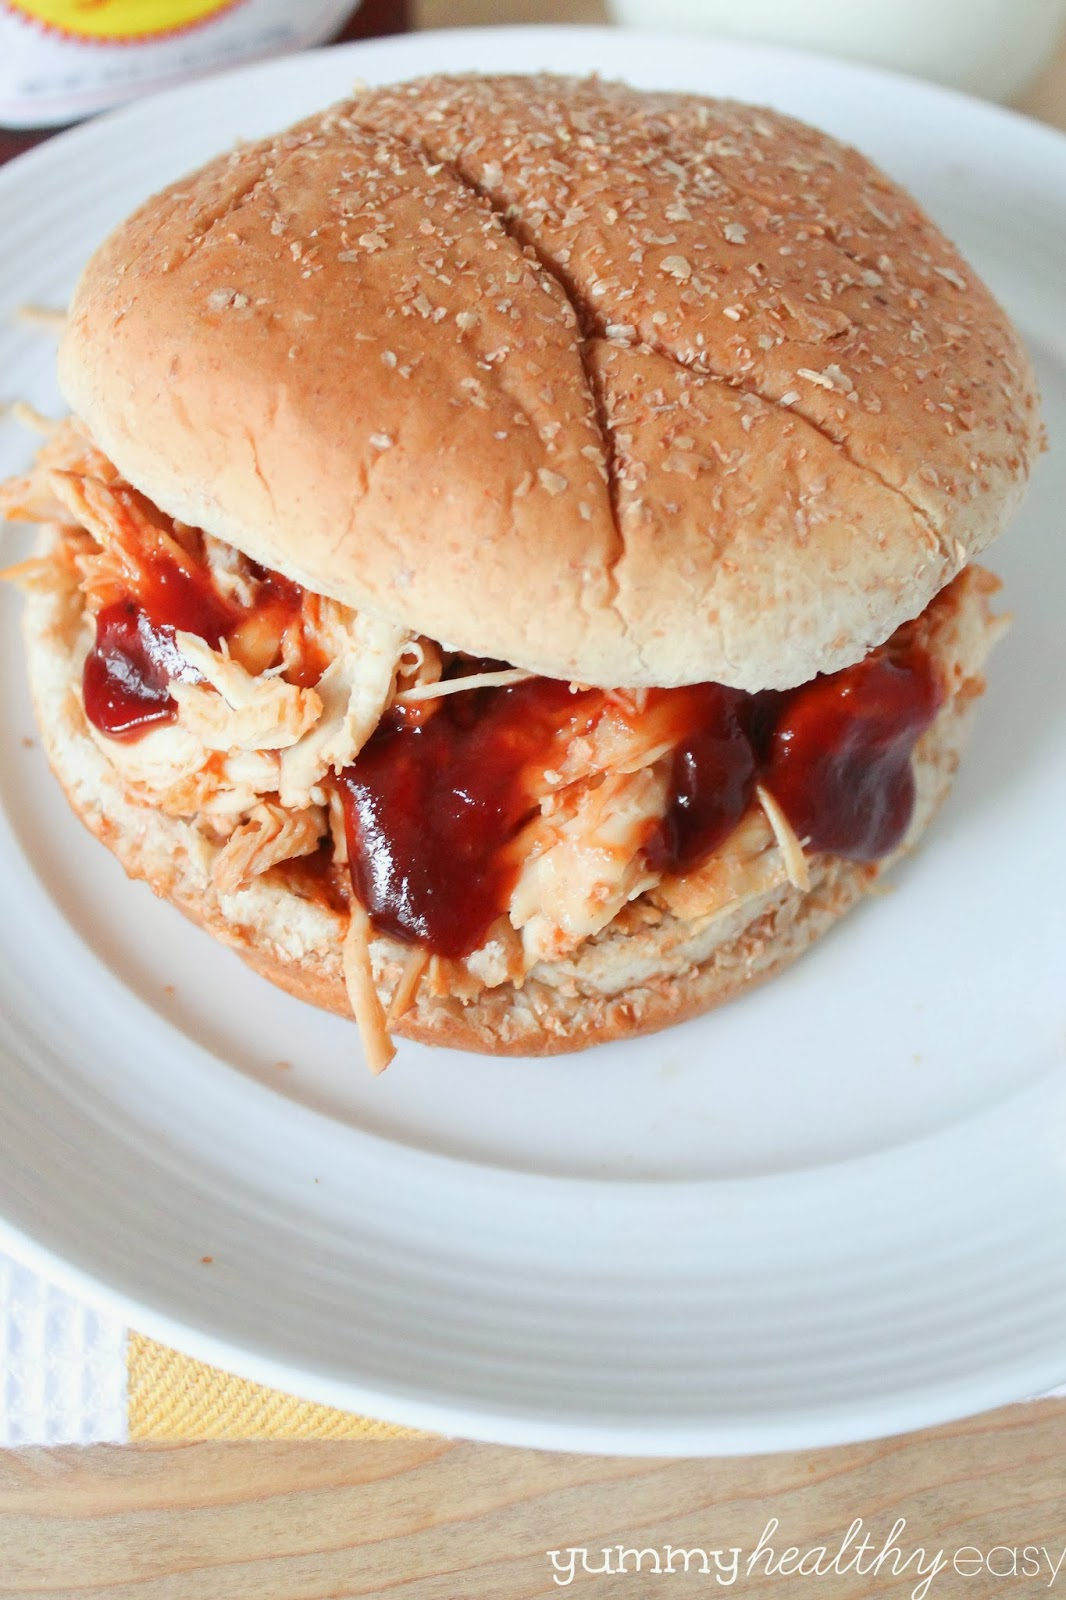 ... Shredded Chicken Sandwiches (only 3 ingredients!) - Yummy Healthy Easy